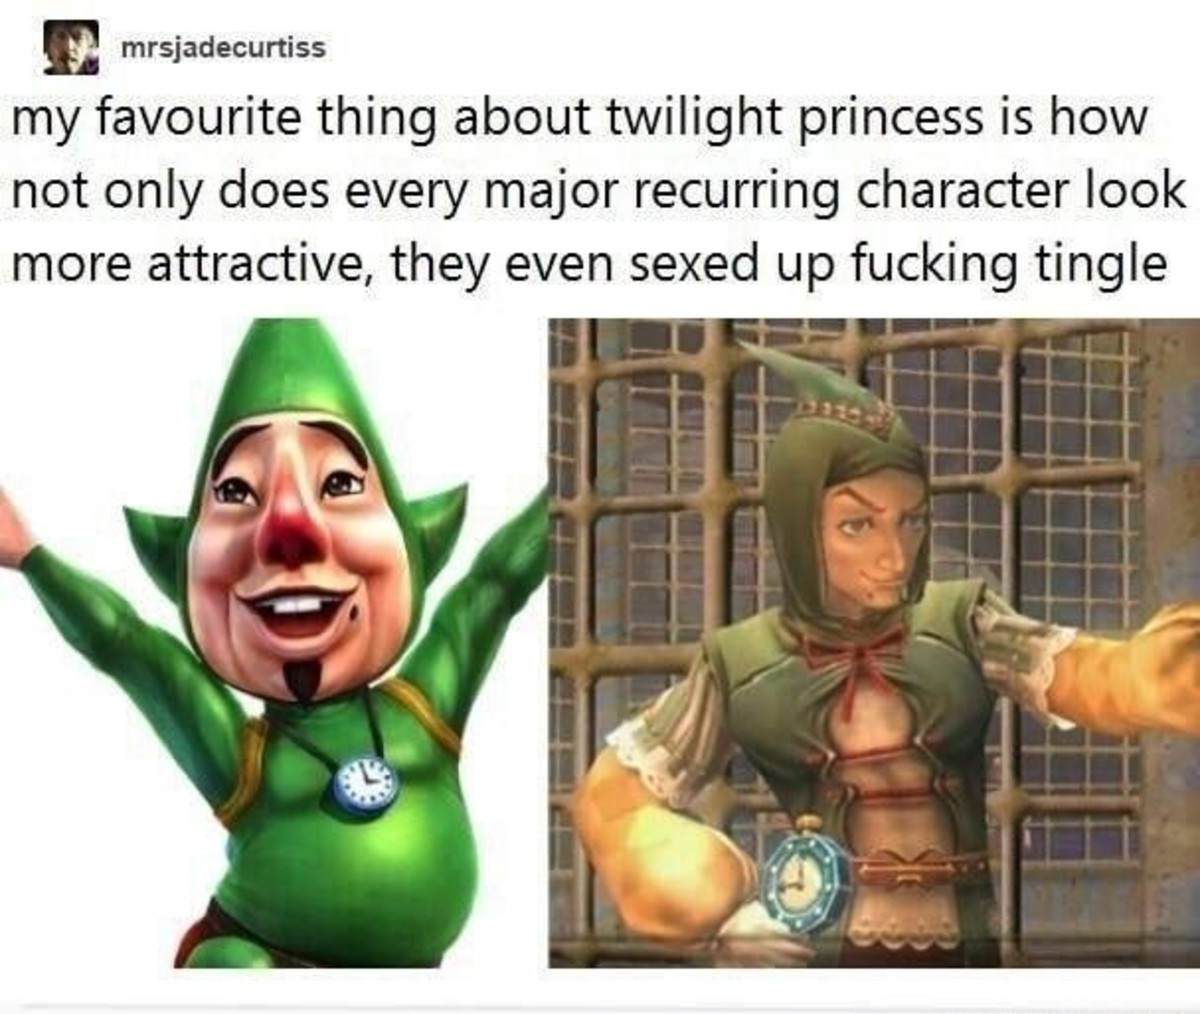 adjoining murky gullible Jellyfish. .. me, TP was my first and is still my favorite zelda game, I really wanna see a proper HD remake, not just a Wii U adaptation